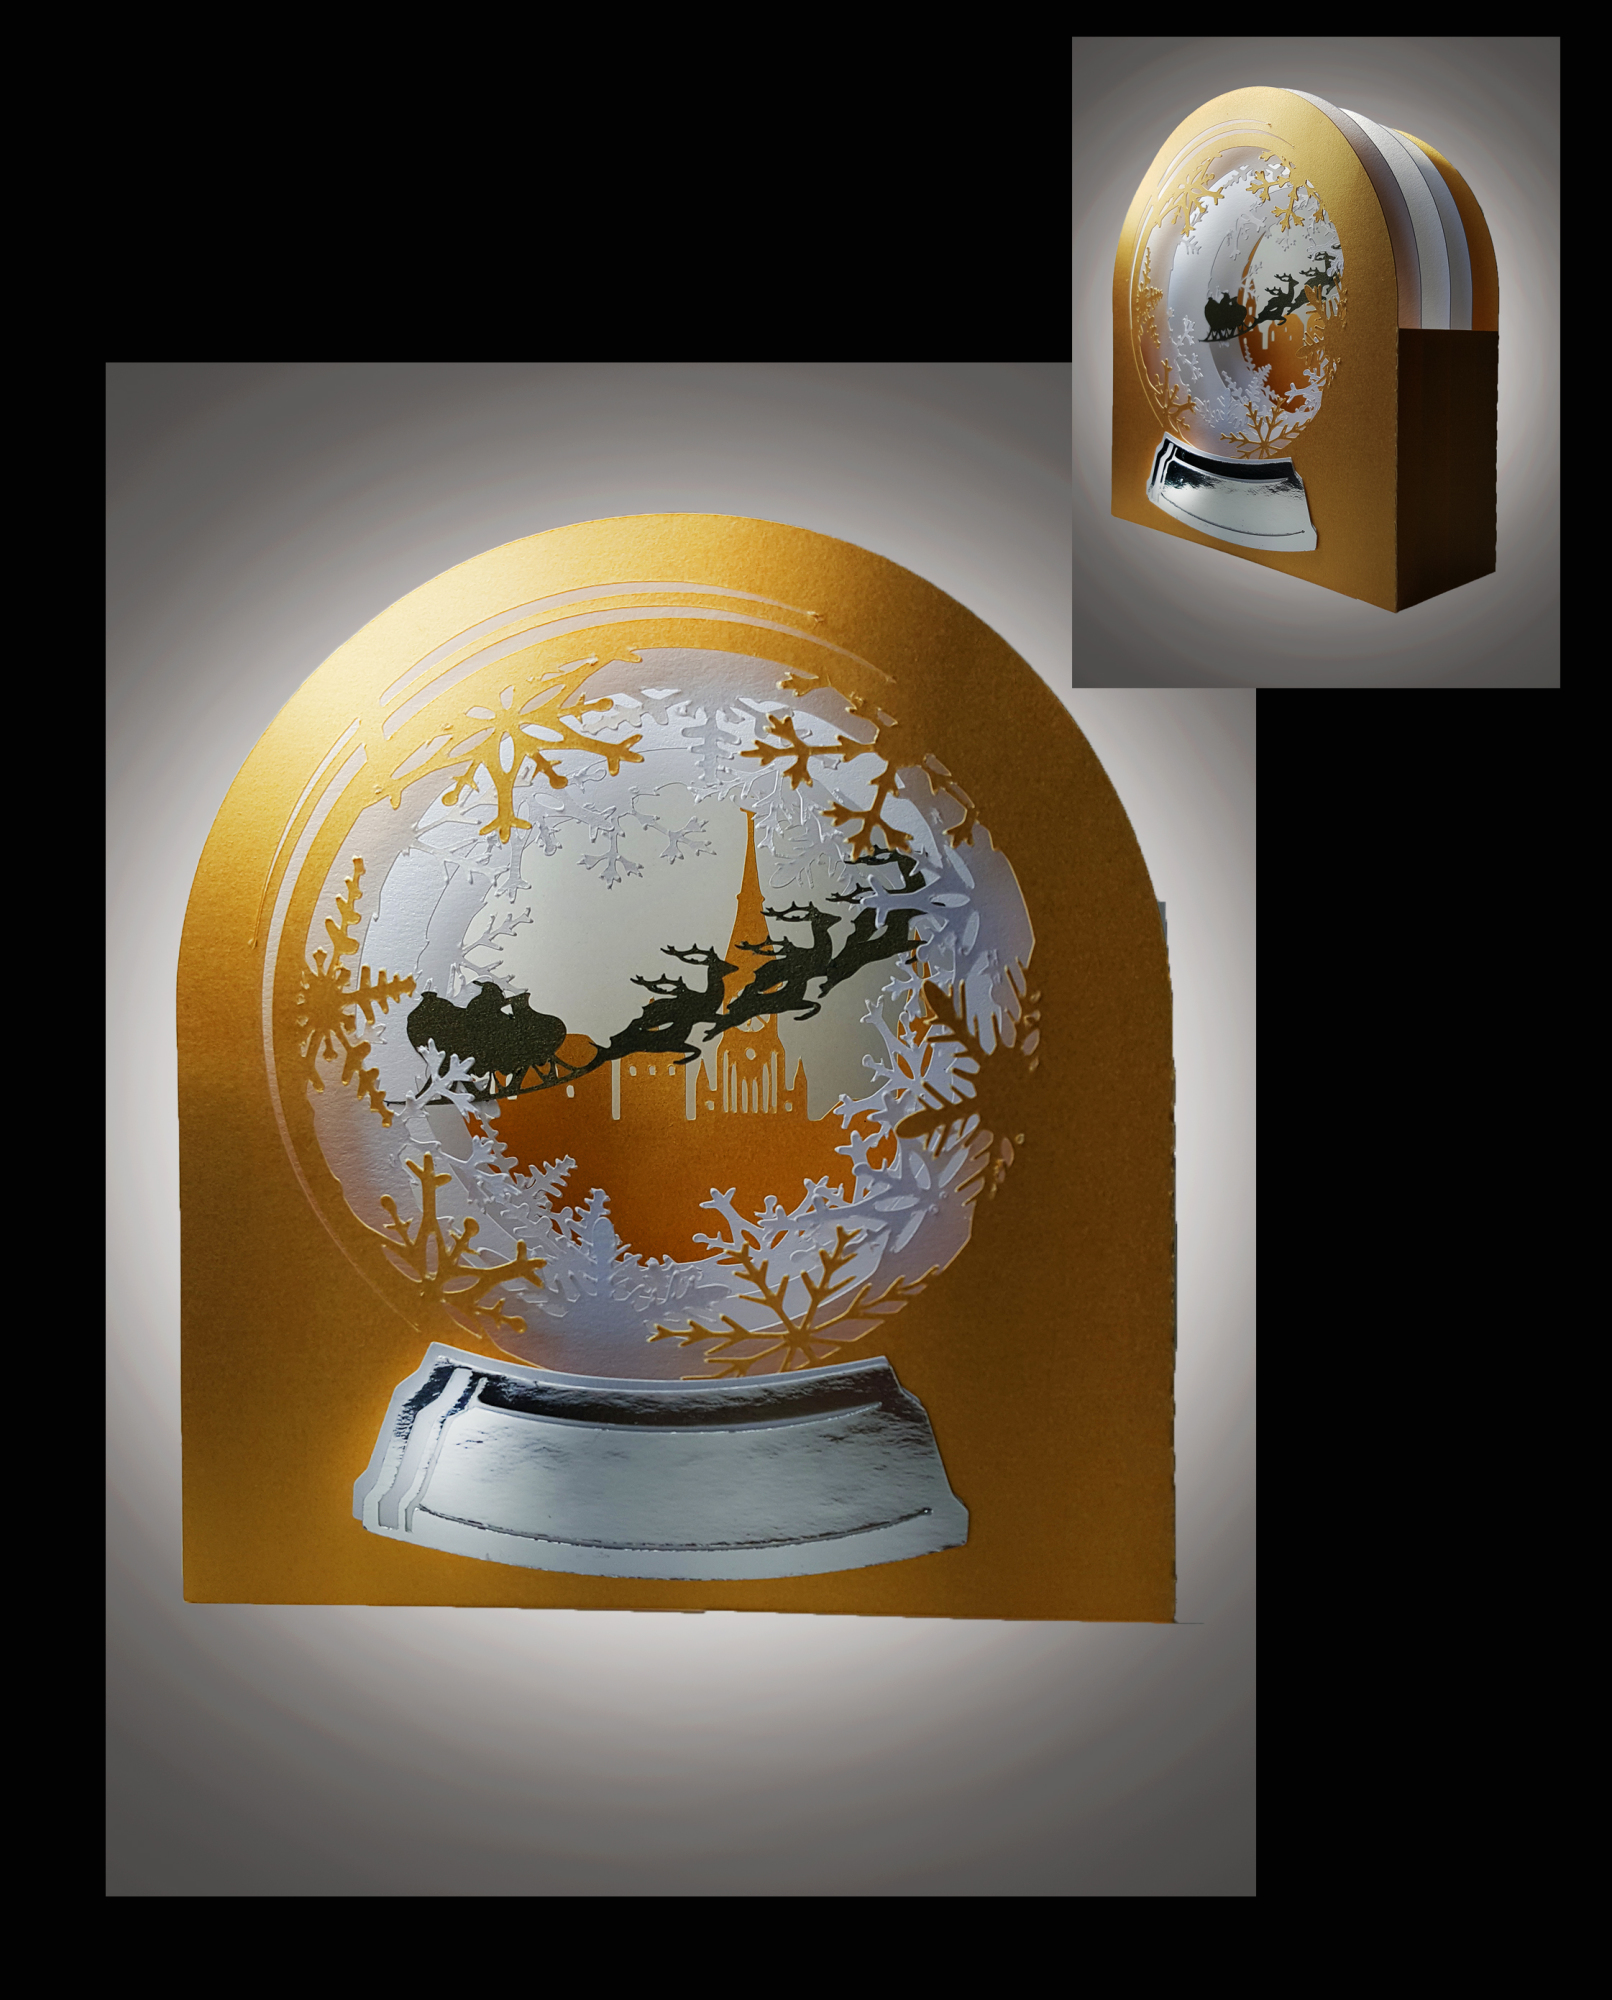 3D Snow Globe Snowy Village greetings card example image 1